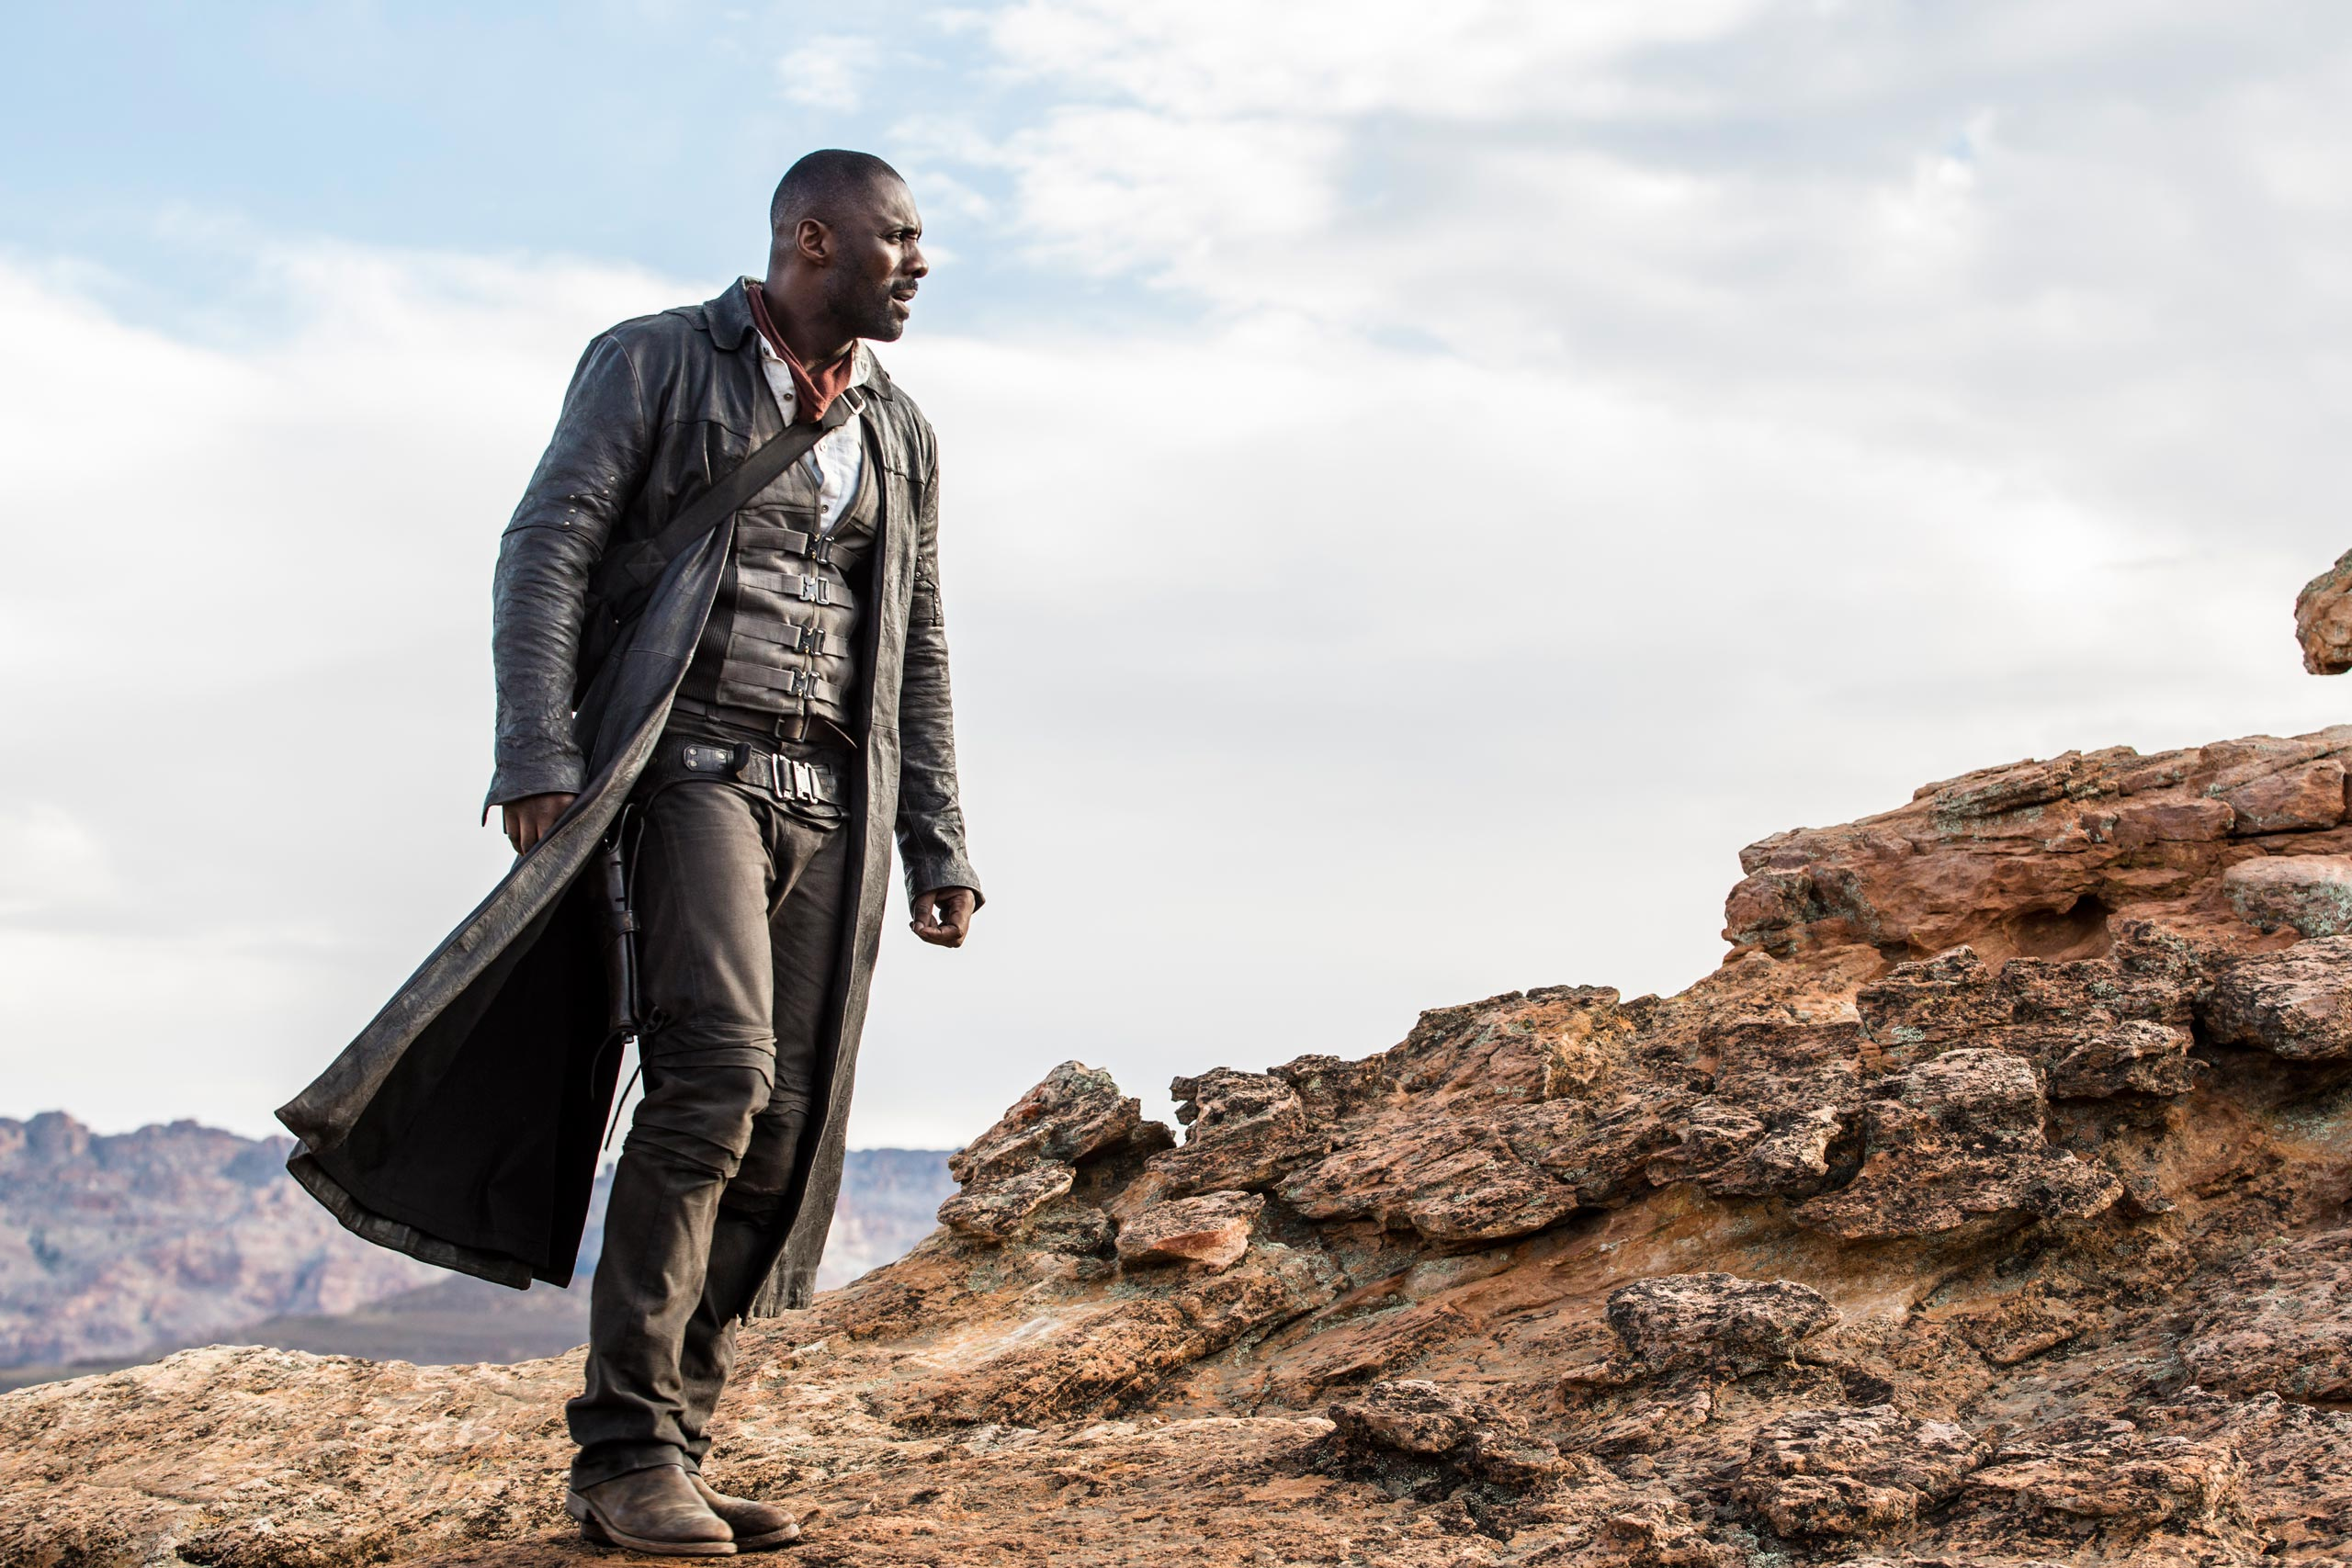 Idris Elba stars in the hotly anticipated film adaptation of Stephen King&#x2019;s <em>The Dark Tower</em>, in theaters this August